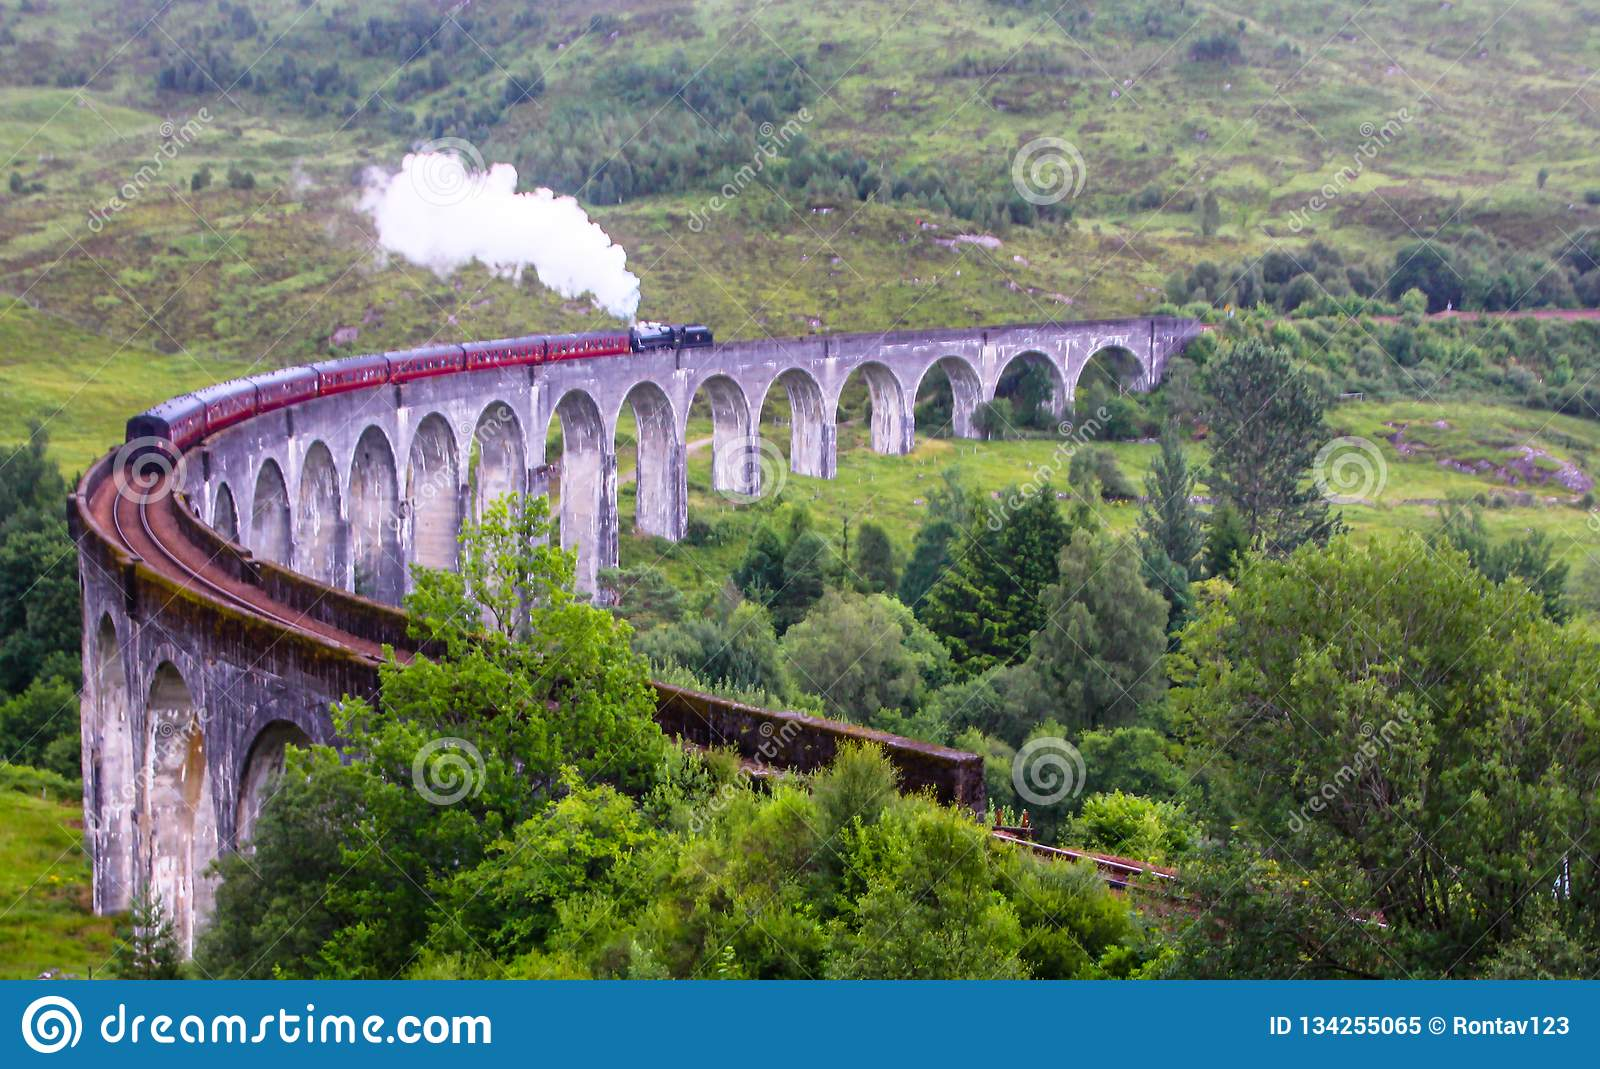 The Jacobite steam train, aka `Hogwarts Express in Harry Potter movies` passes Glenfinnan viaduct, Scotland, UK